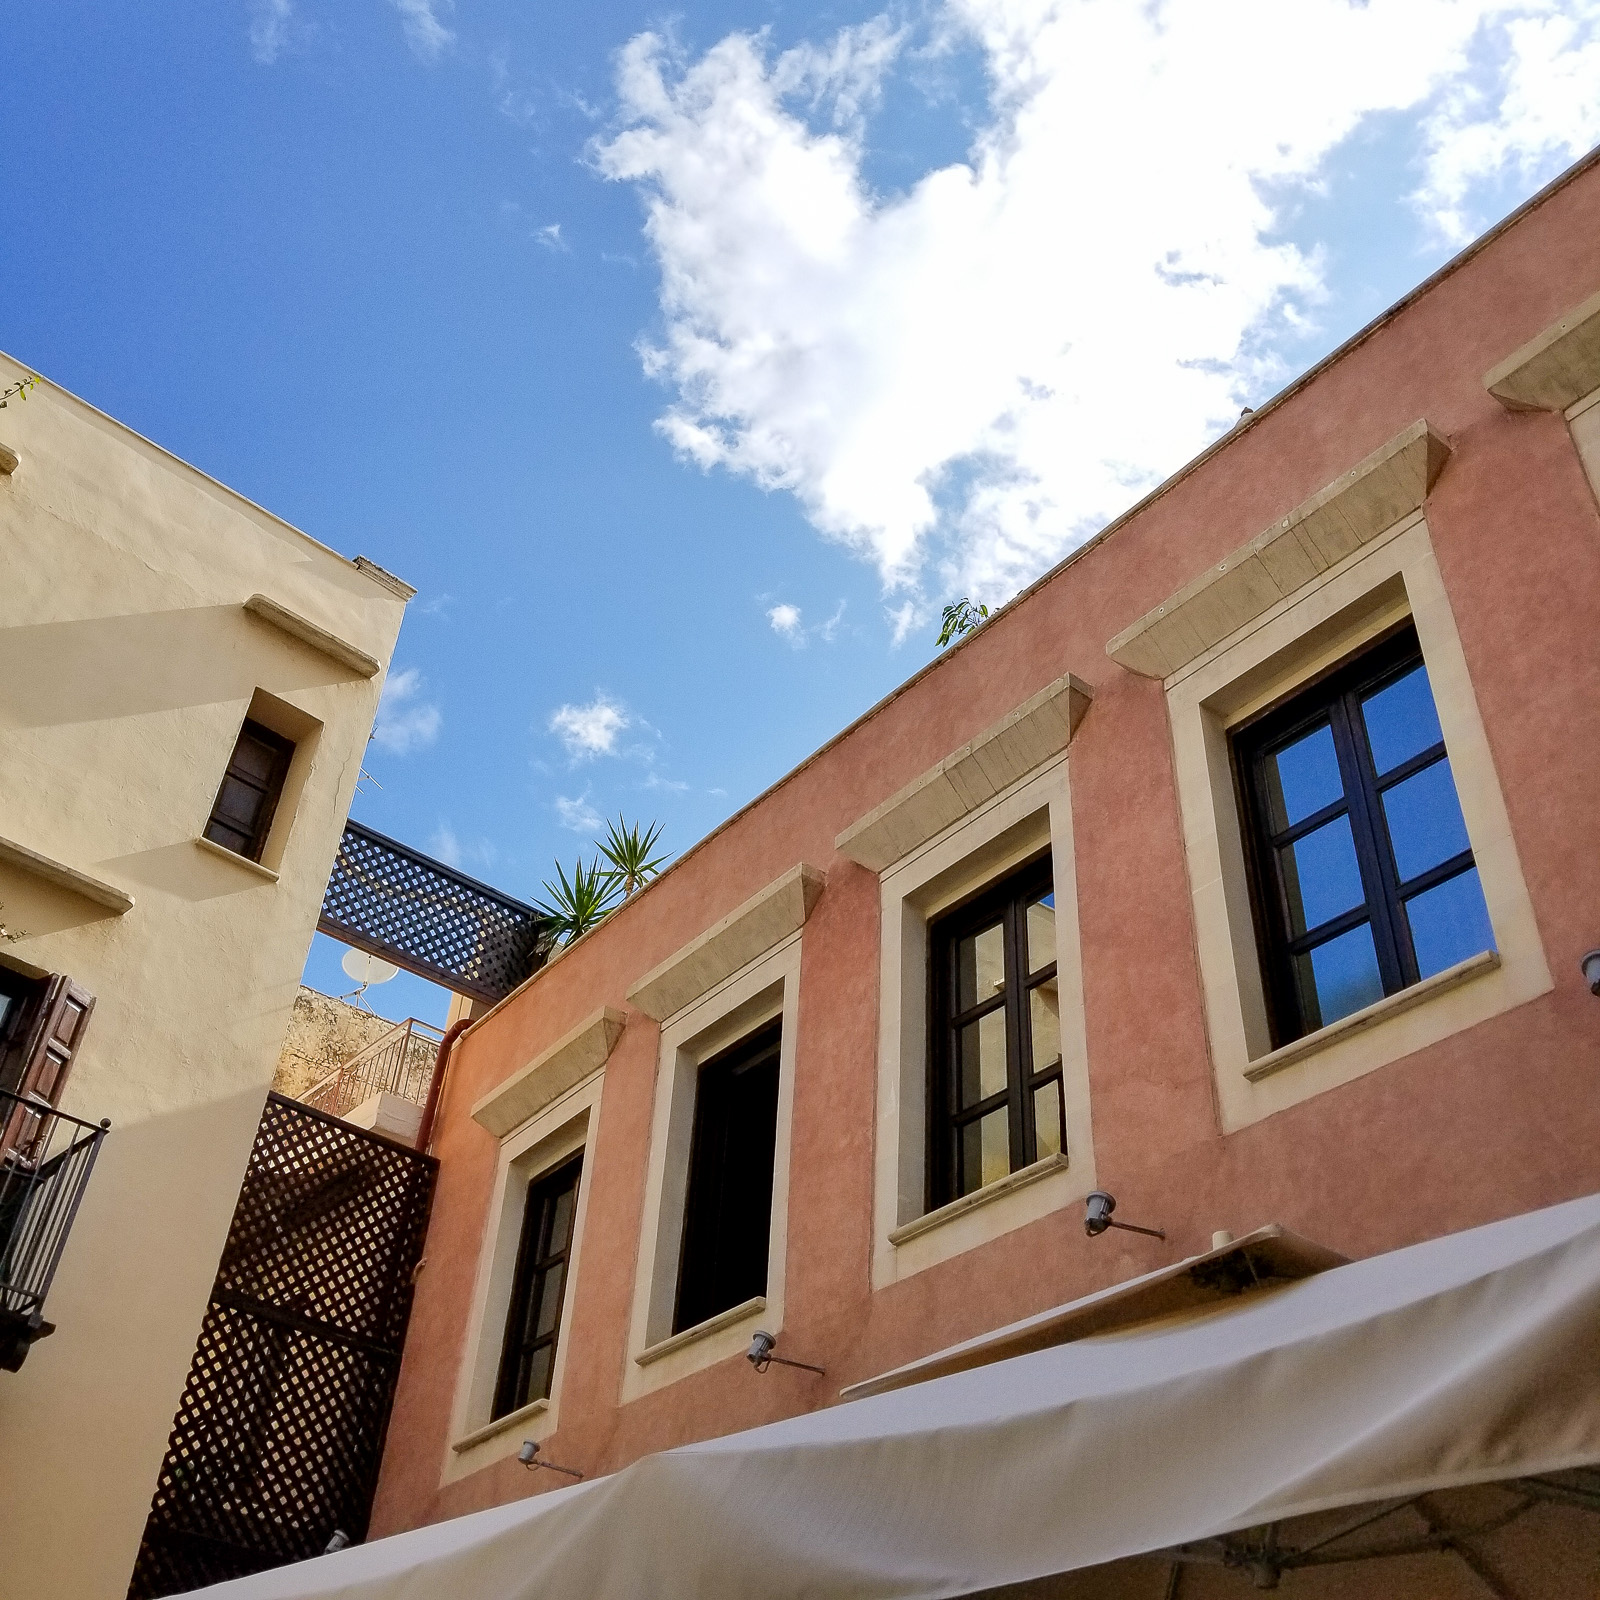 My Stay in Crete. | Ashley from Le Stylo Rouge